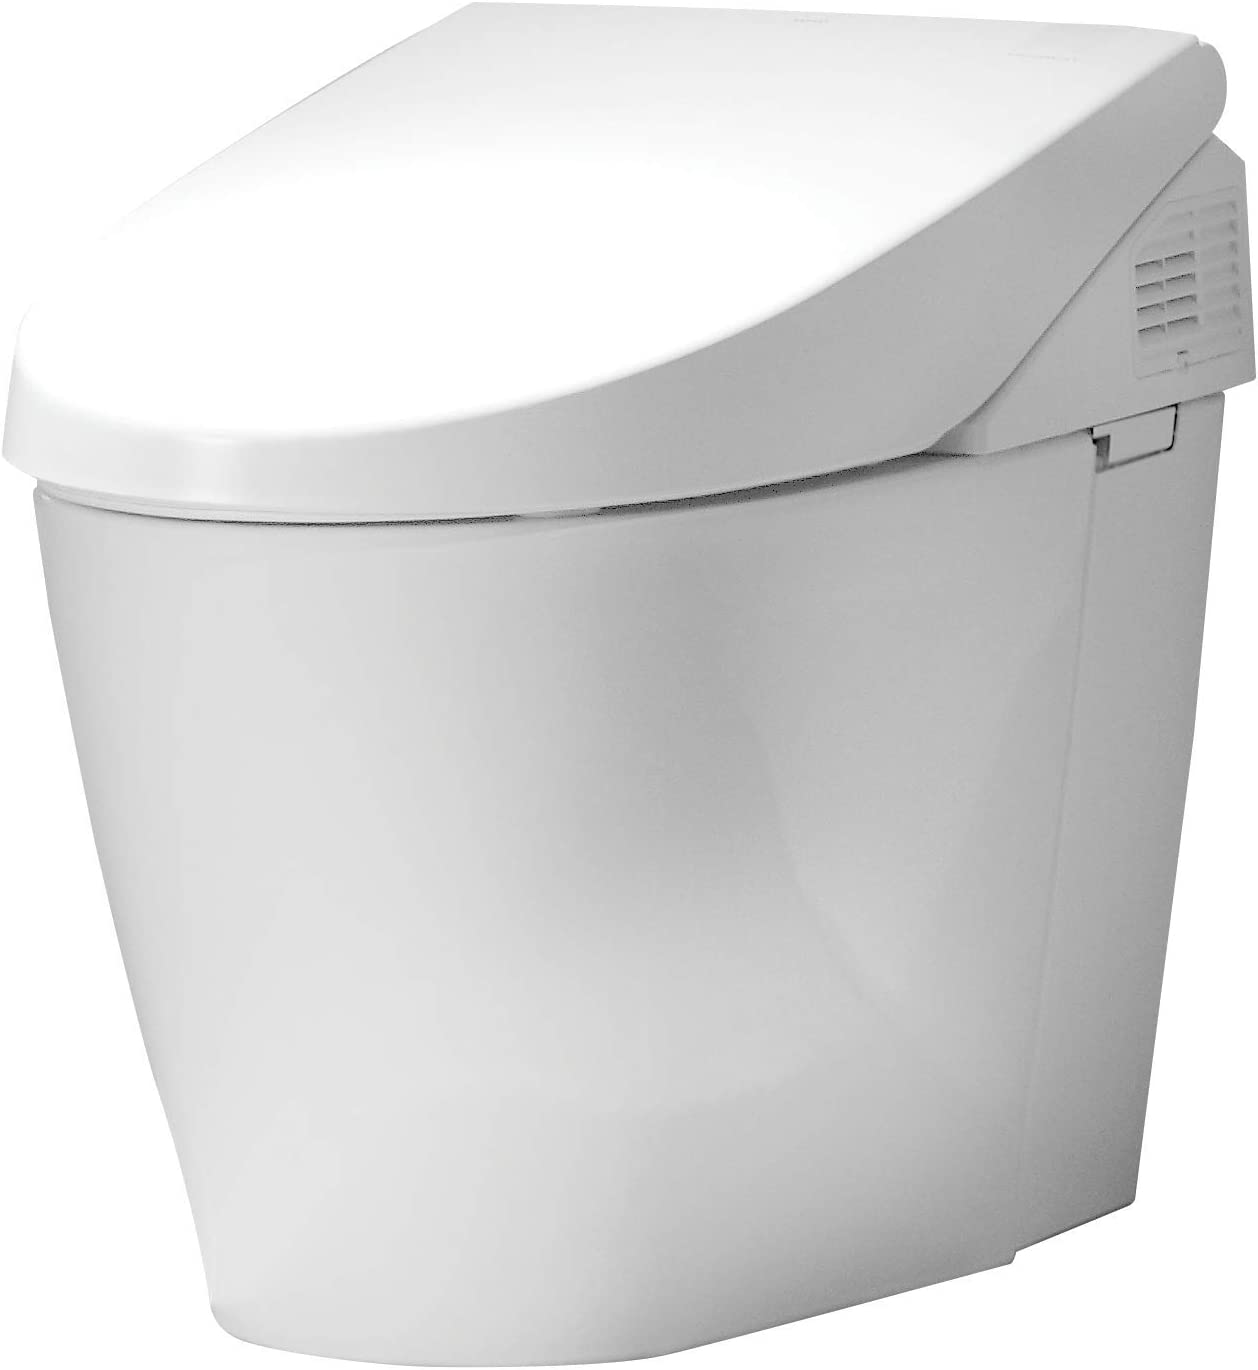 TOTO MS982CUMG#01 Neorest 550H with Ewater+ Disinfection System